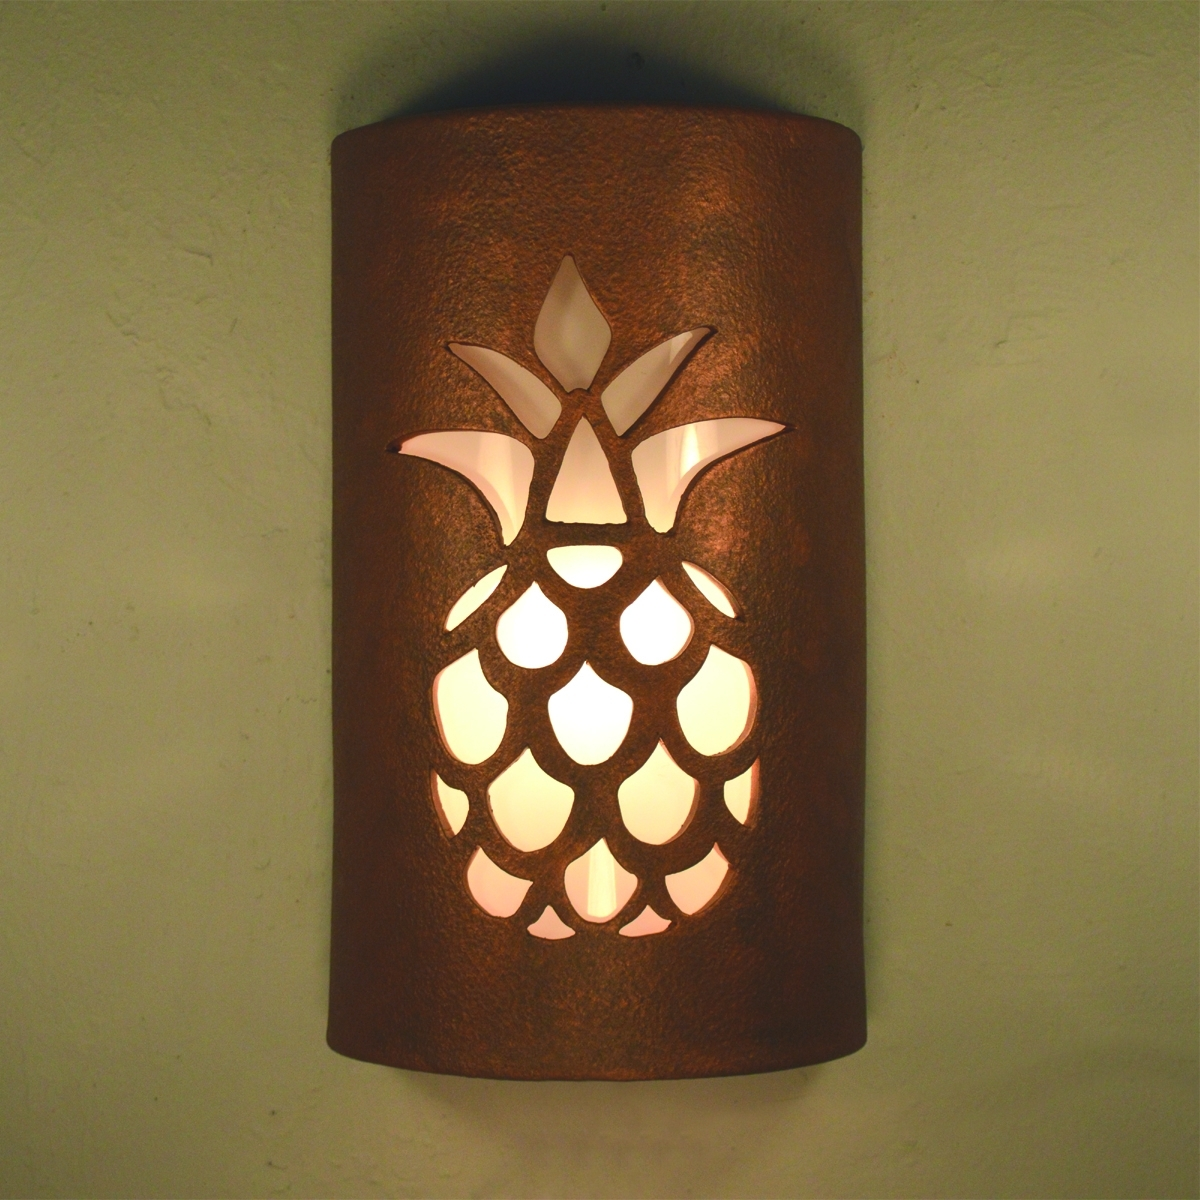 Outdoor Pineapple Lights - Outdoor Lighting Ideas with regard to Outdoor Pineapple Lanterns (Image 13 of 20)